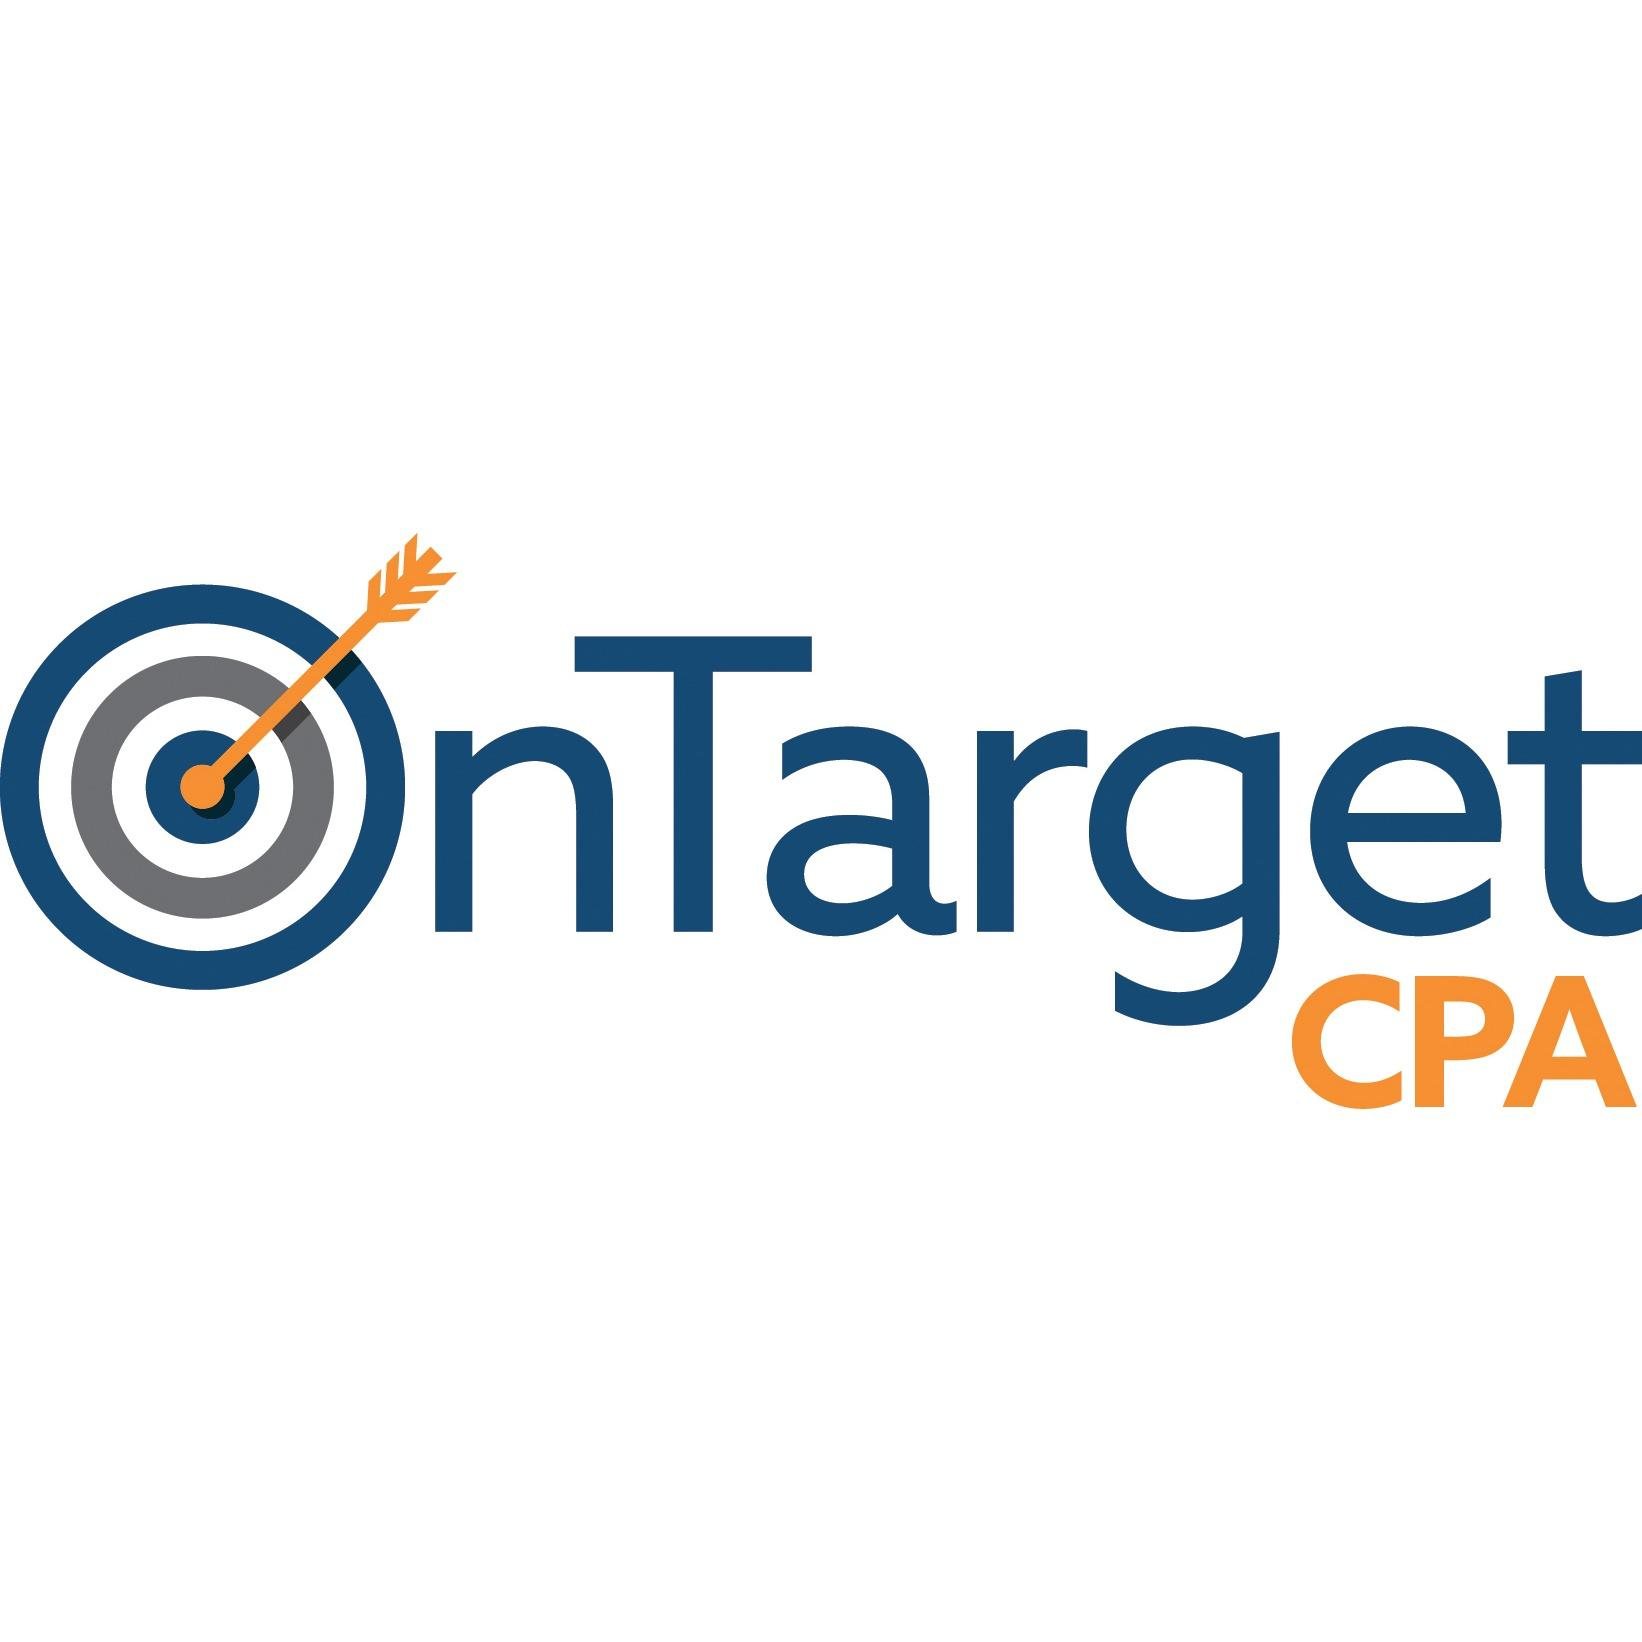 OnTarget CPA